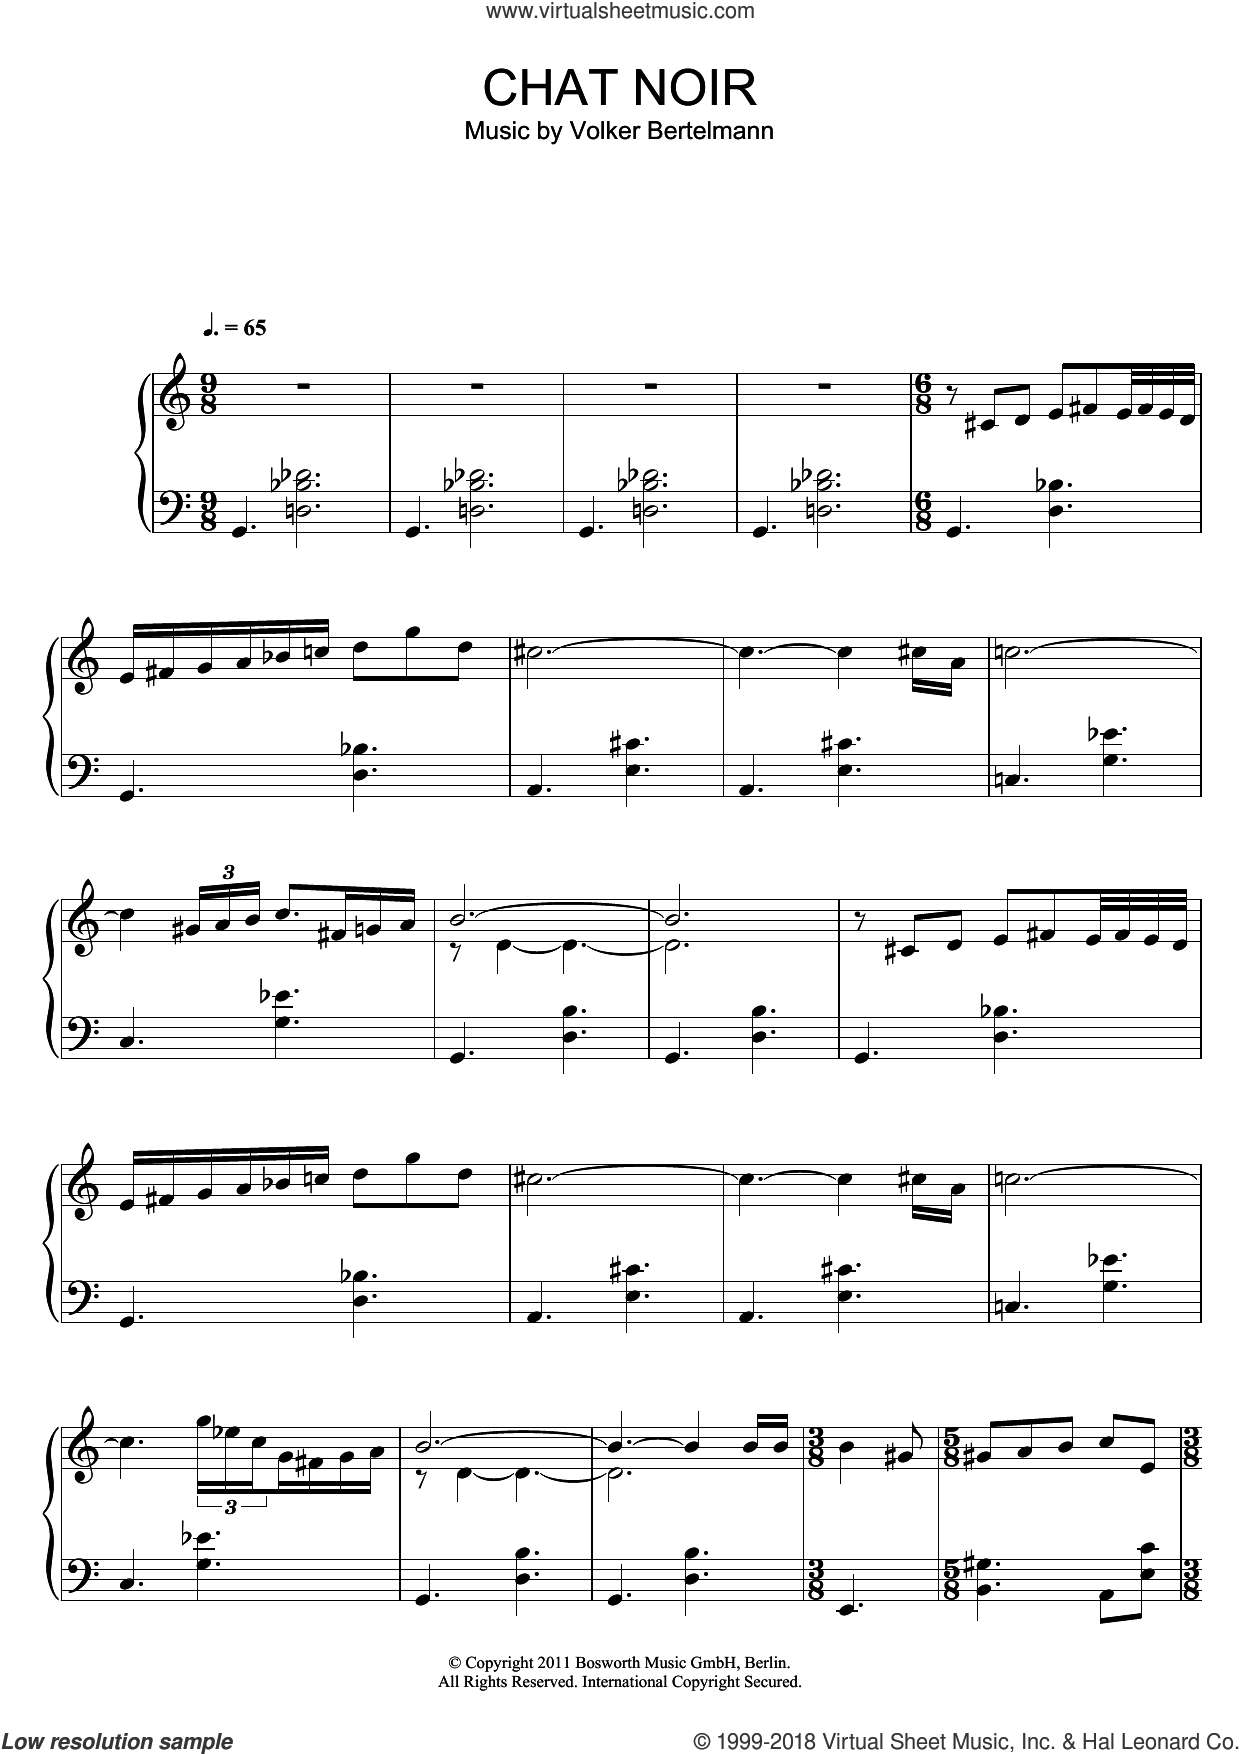 Chat Noir sheet music for piano solo by Hauschka and Volker Bertelmann, classical score, intermediate skill level